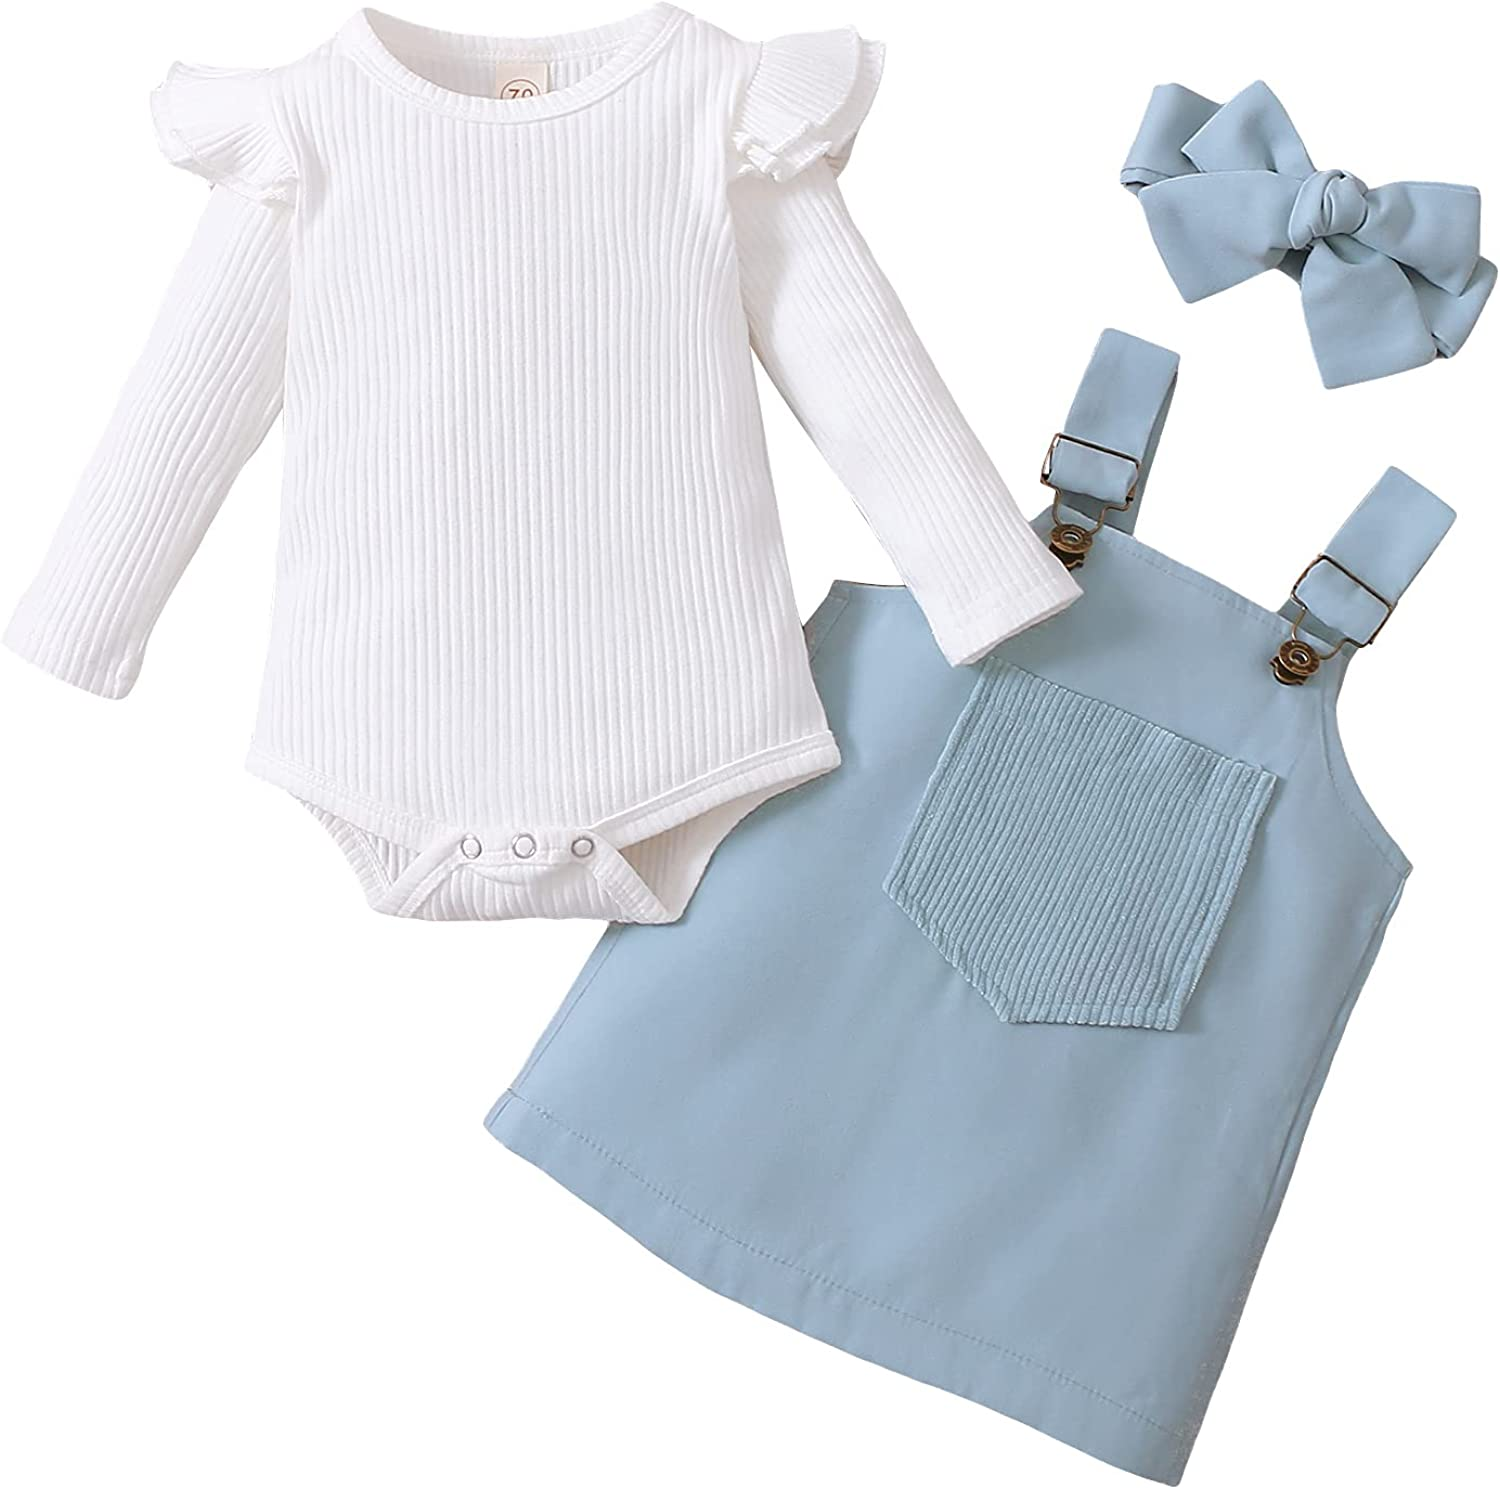 Newborn Baby Girl Clothes Fall Winter Outfits Toddler Girl Skirt Set Long Sleeve Ribbed Romper Overall Dress Headband